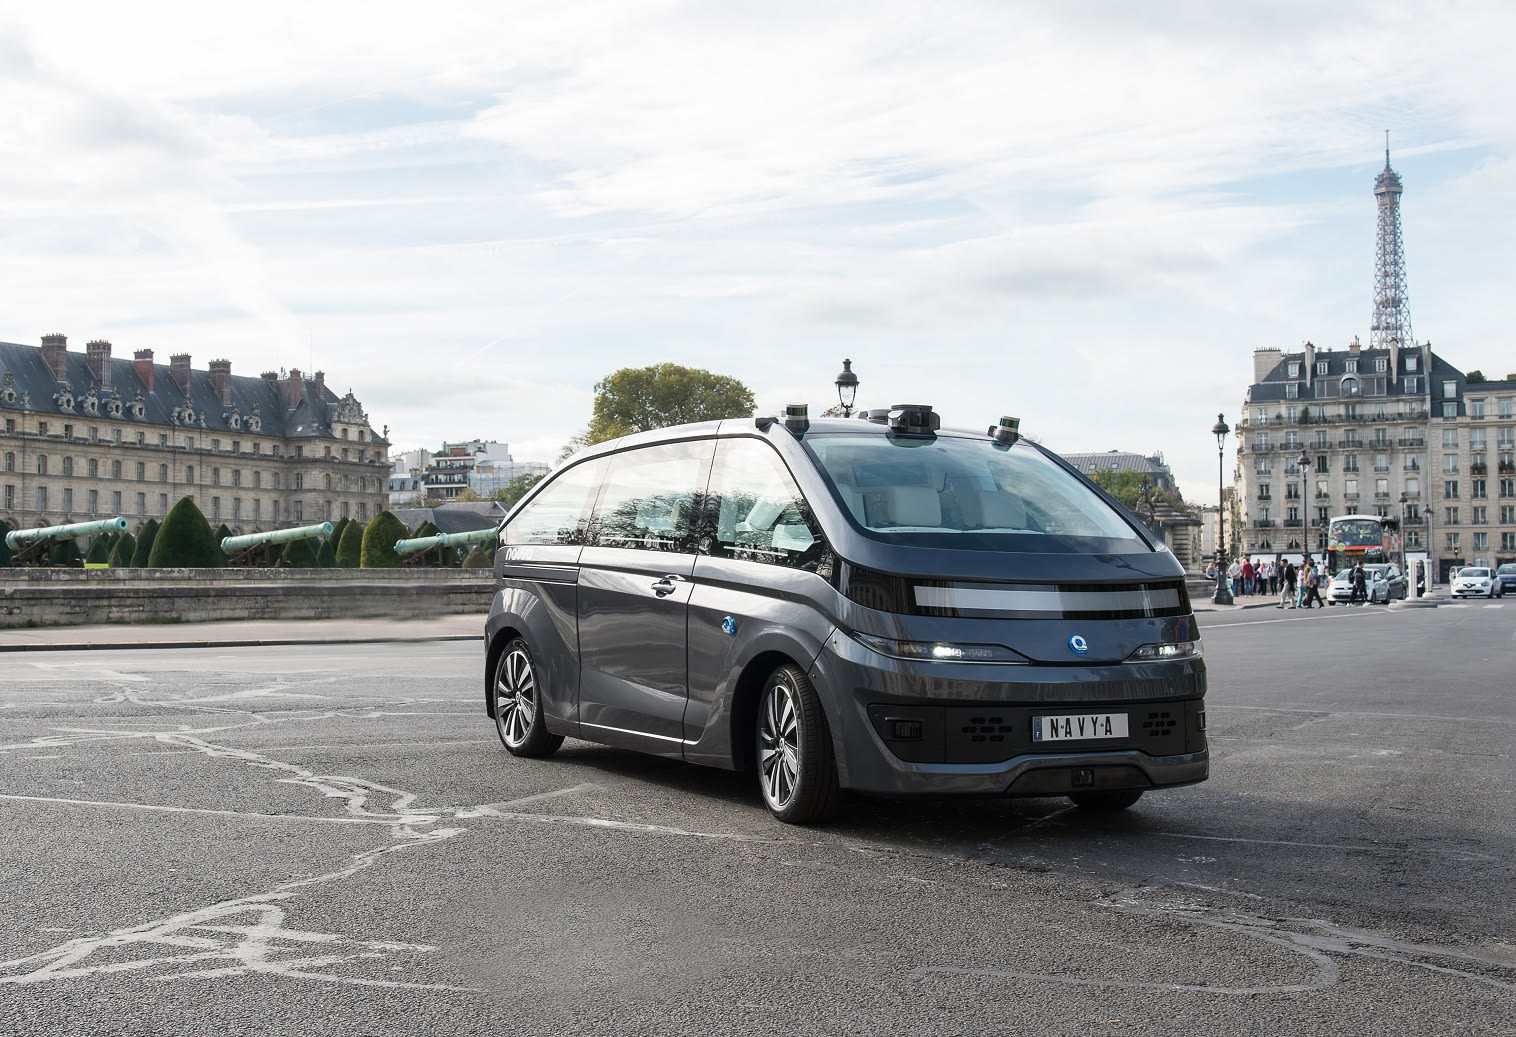 Navya puts its self-driving shuttle tech in an autonomous taxi